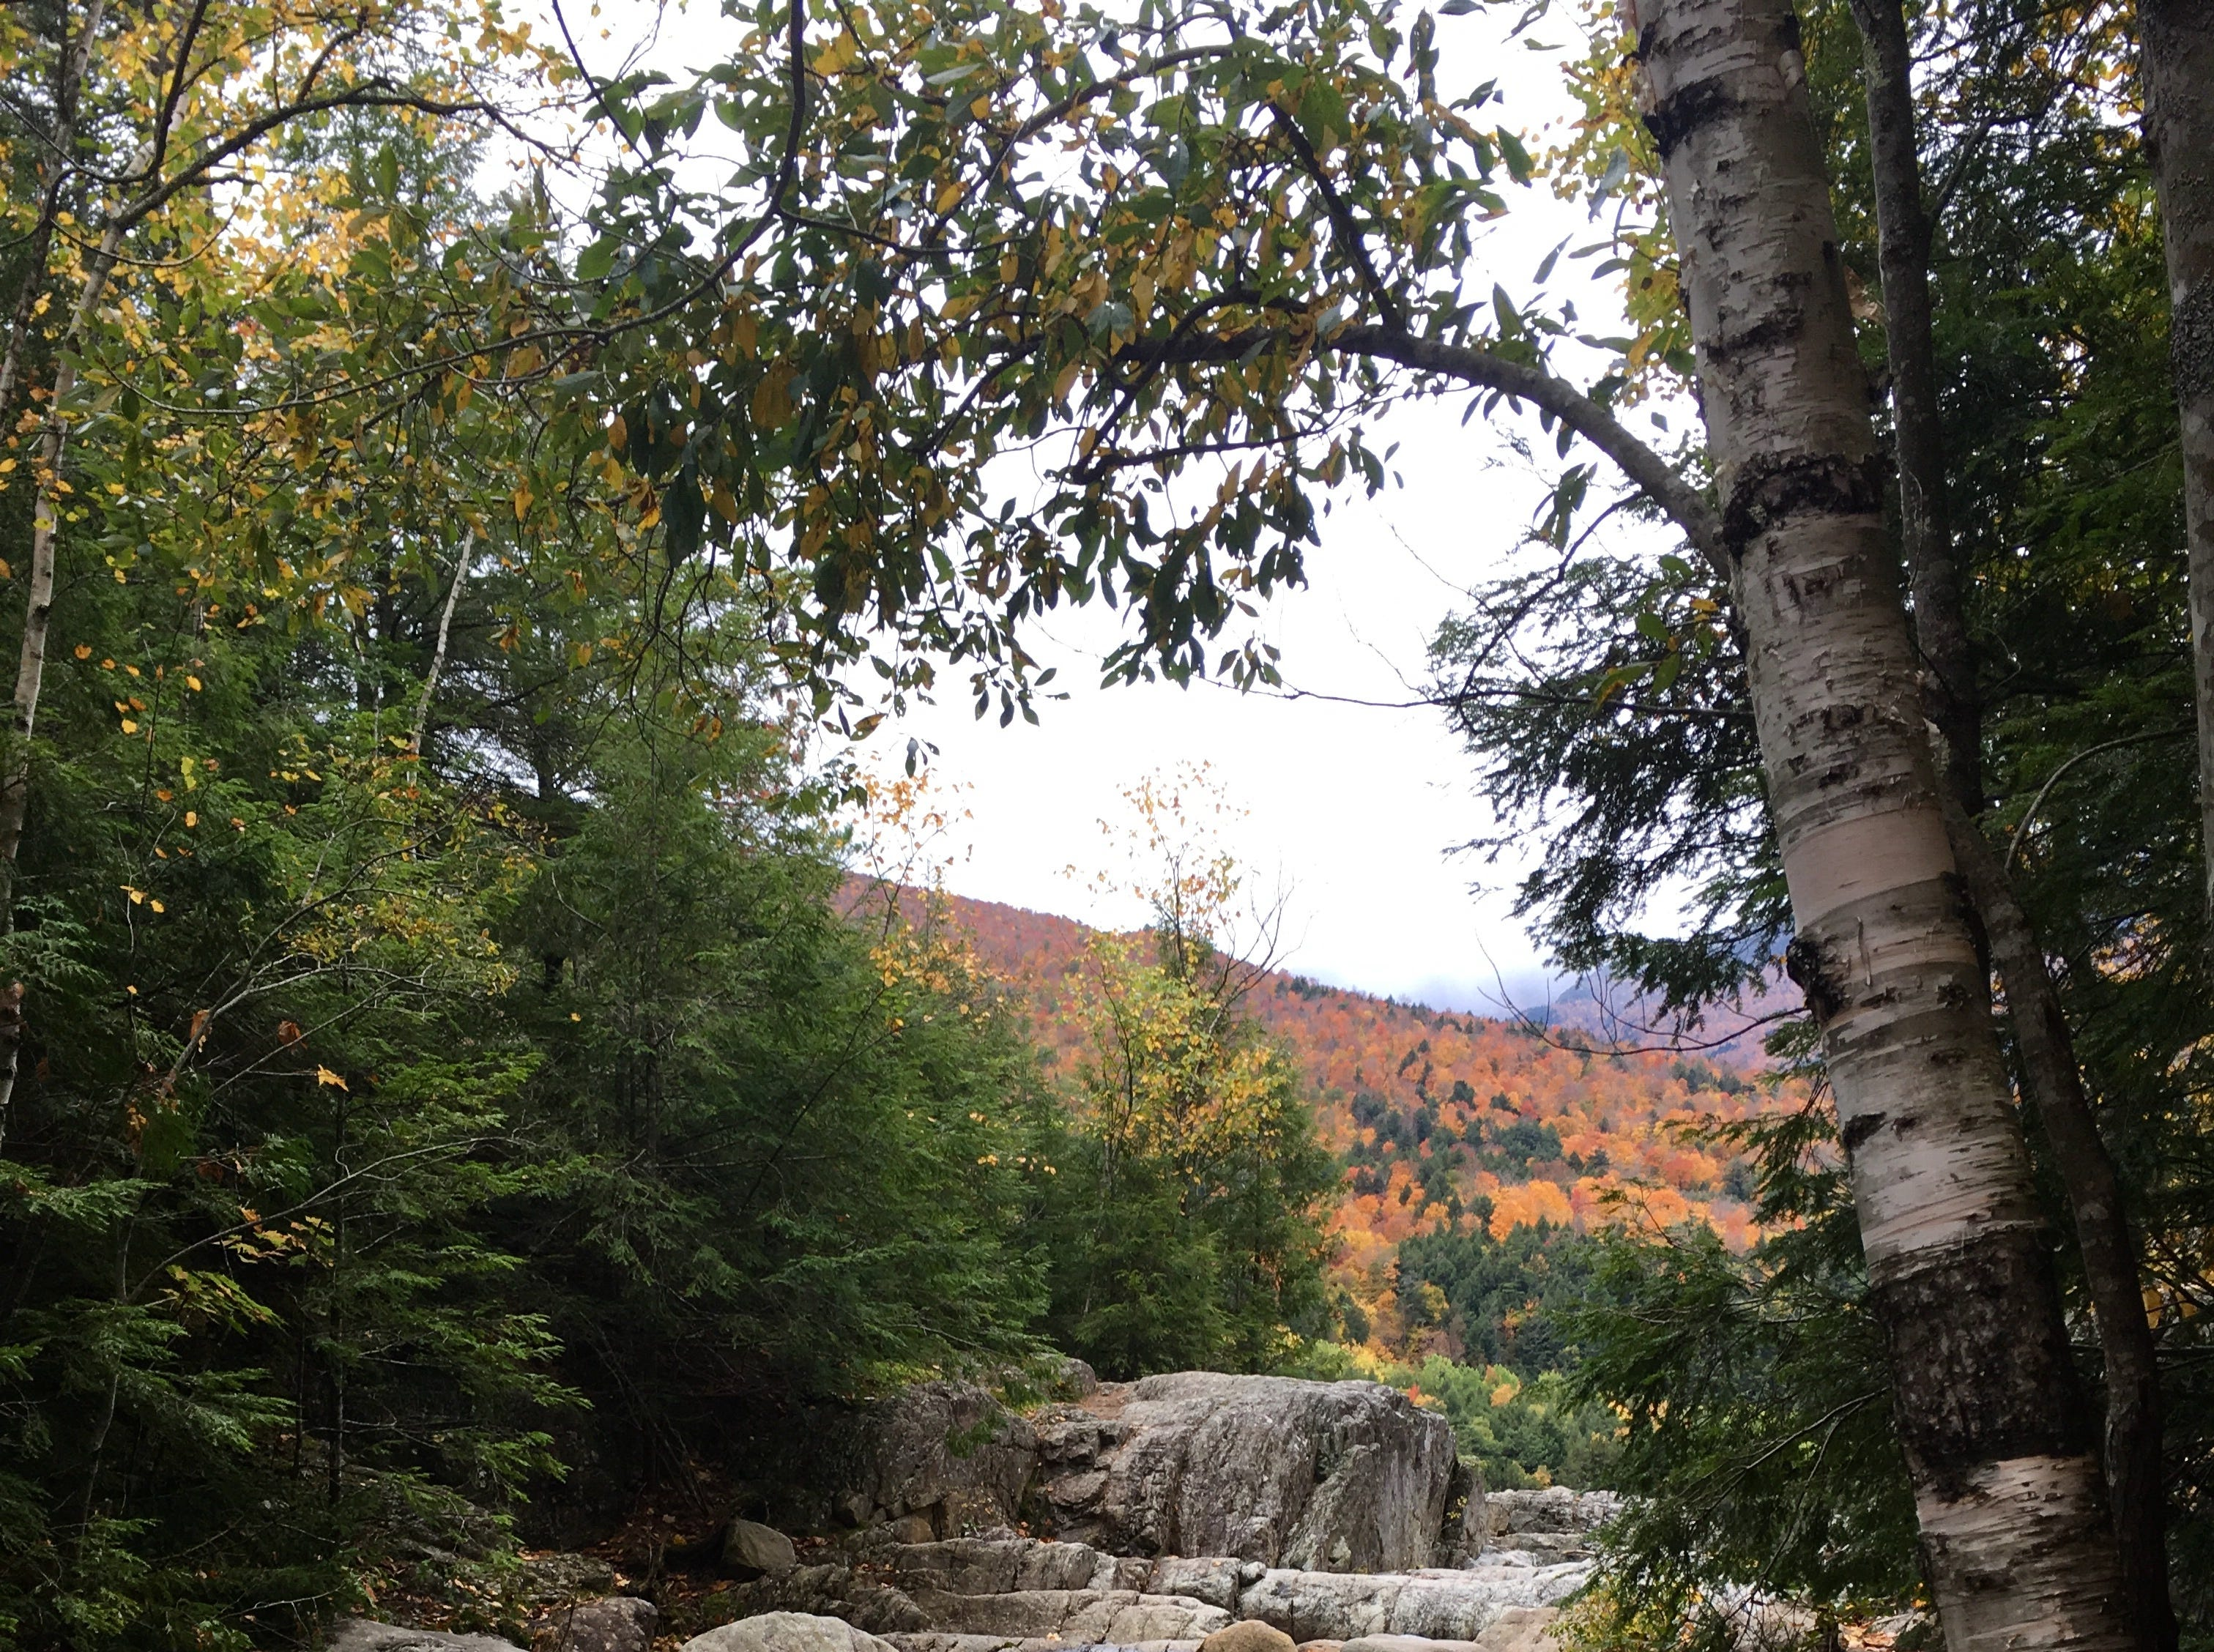 The top of Roaring Brook Falls in New York's Adirondack Park on Oct. 13, 2018.